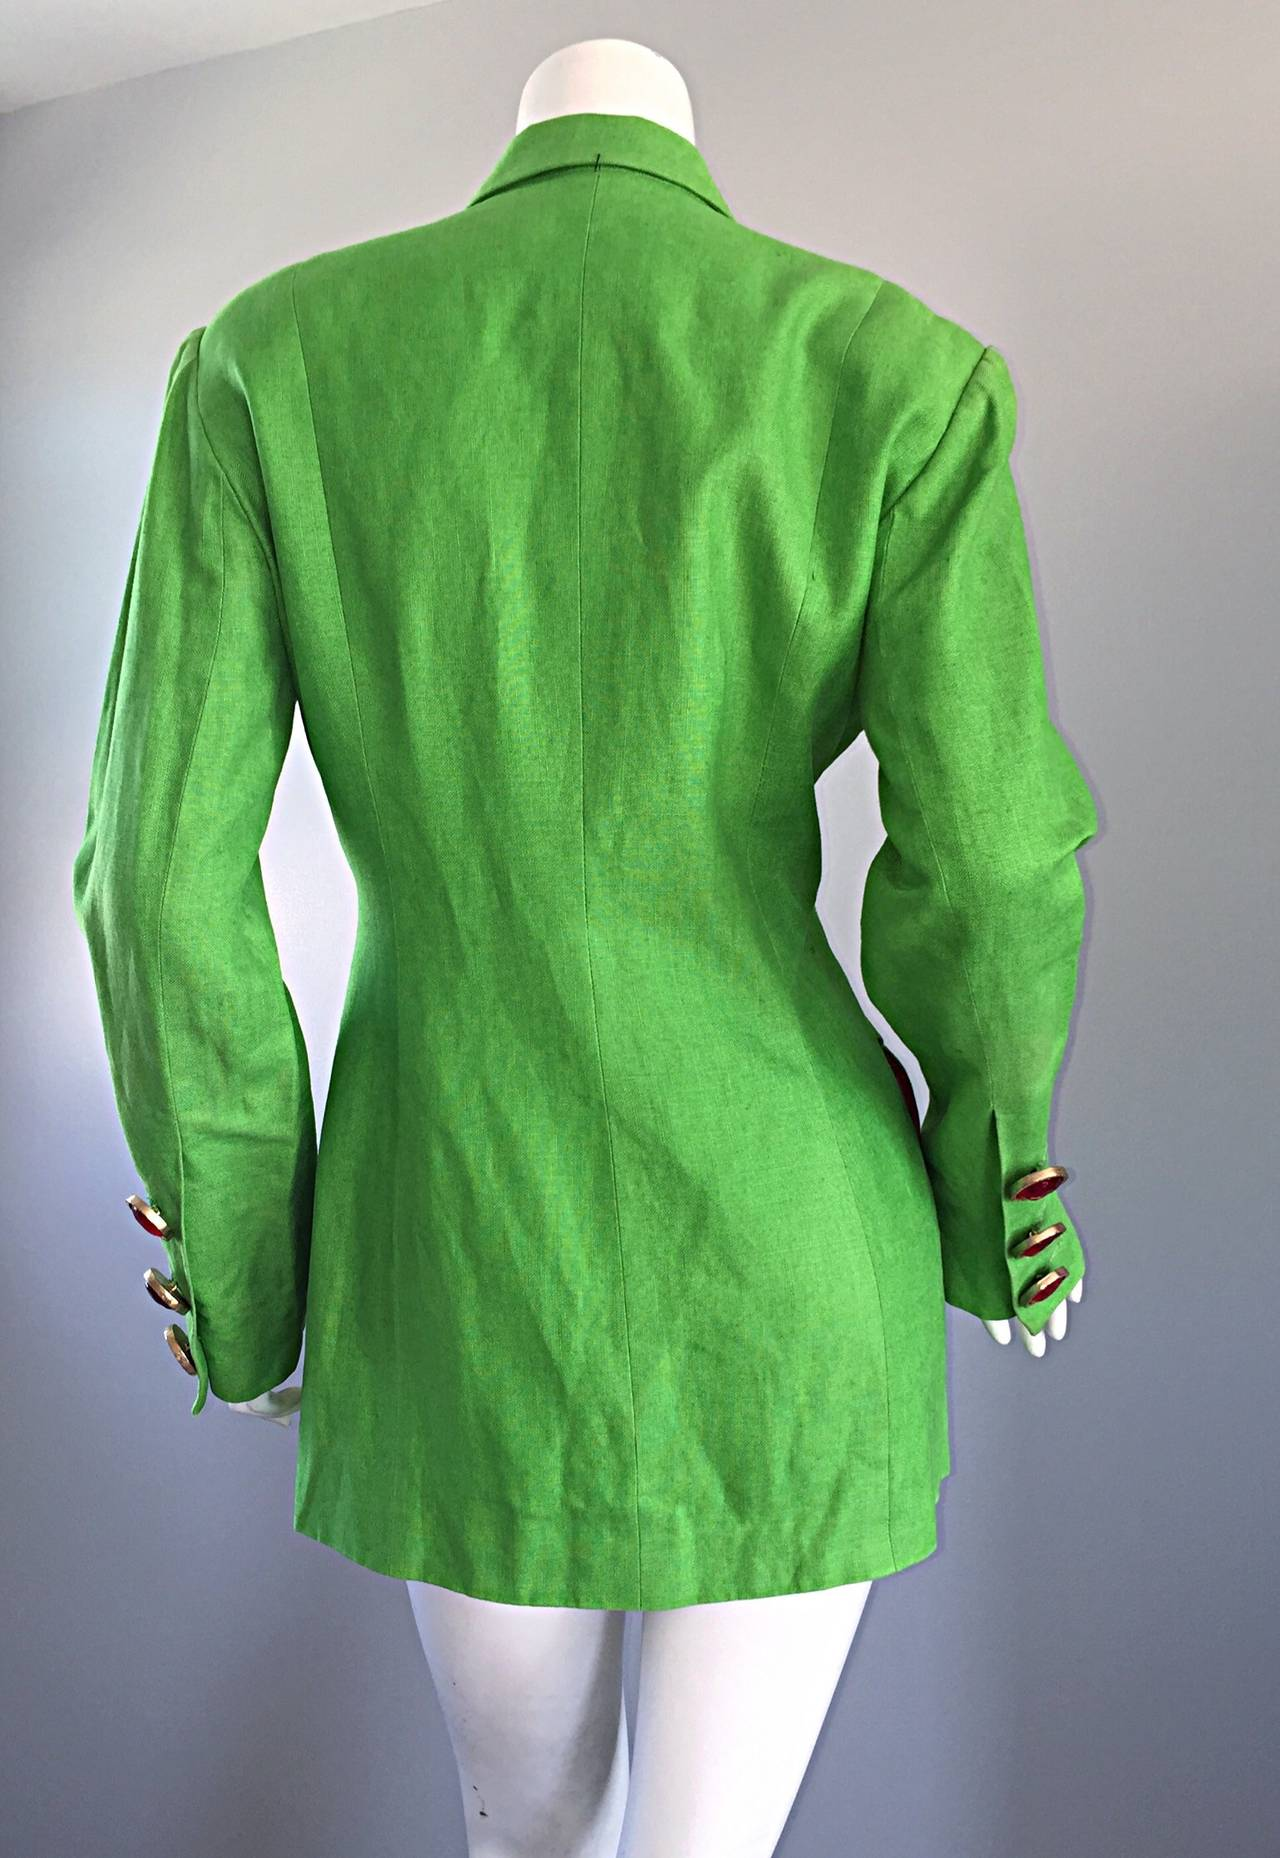 Incredible Vintage Gemma Kahng Green + Red Blazer w/ Gripoix Buttons For Sale 1